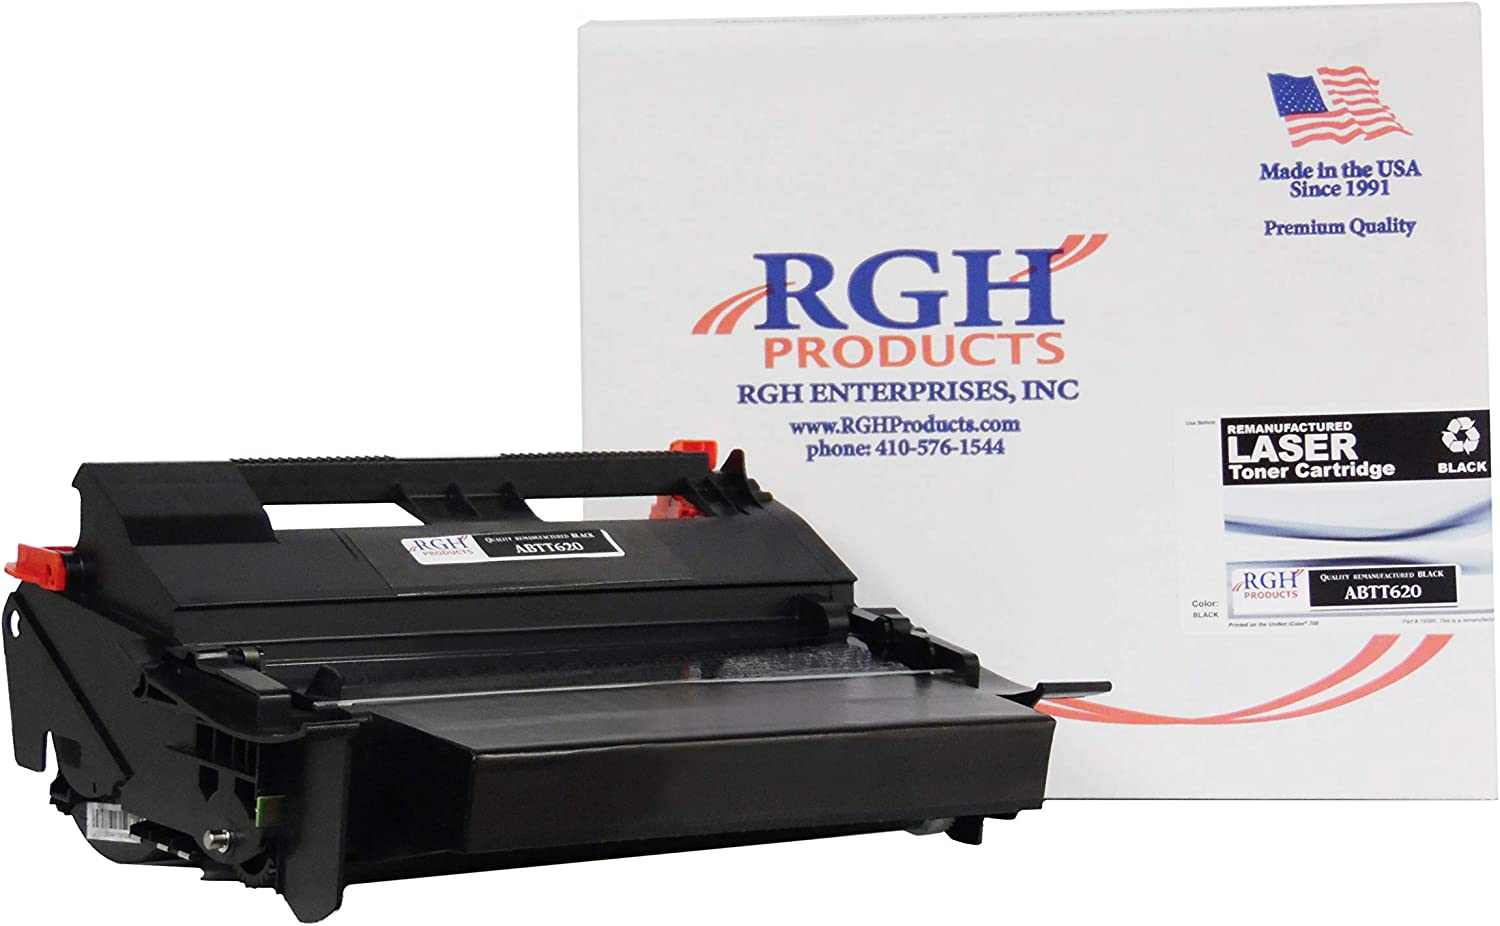 RGH Products(TM) Remanufactured ABTT520 Black Toner Cartridge Tray for use in Lexmark T620/T622/X620/X622, Series Optra Series Printer